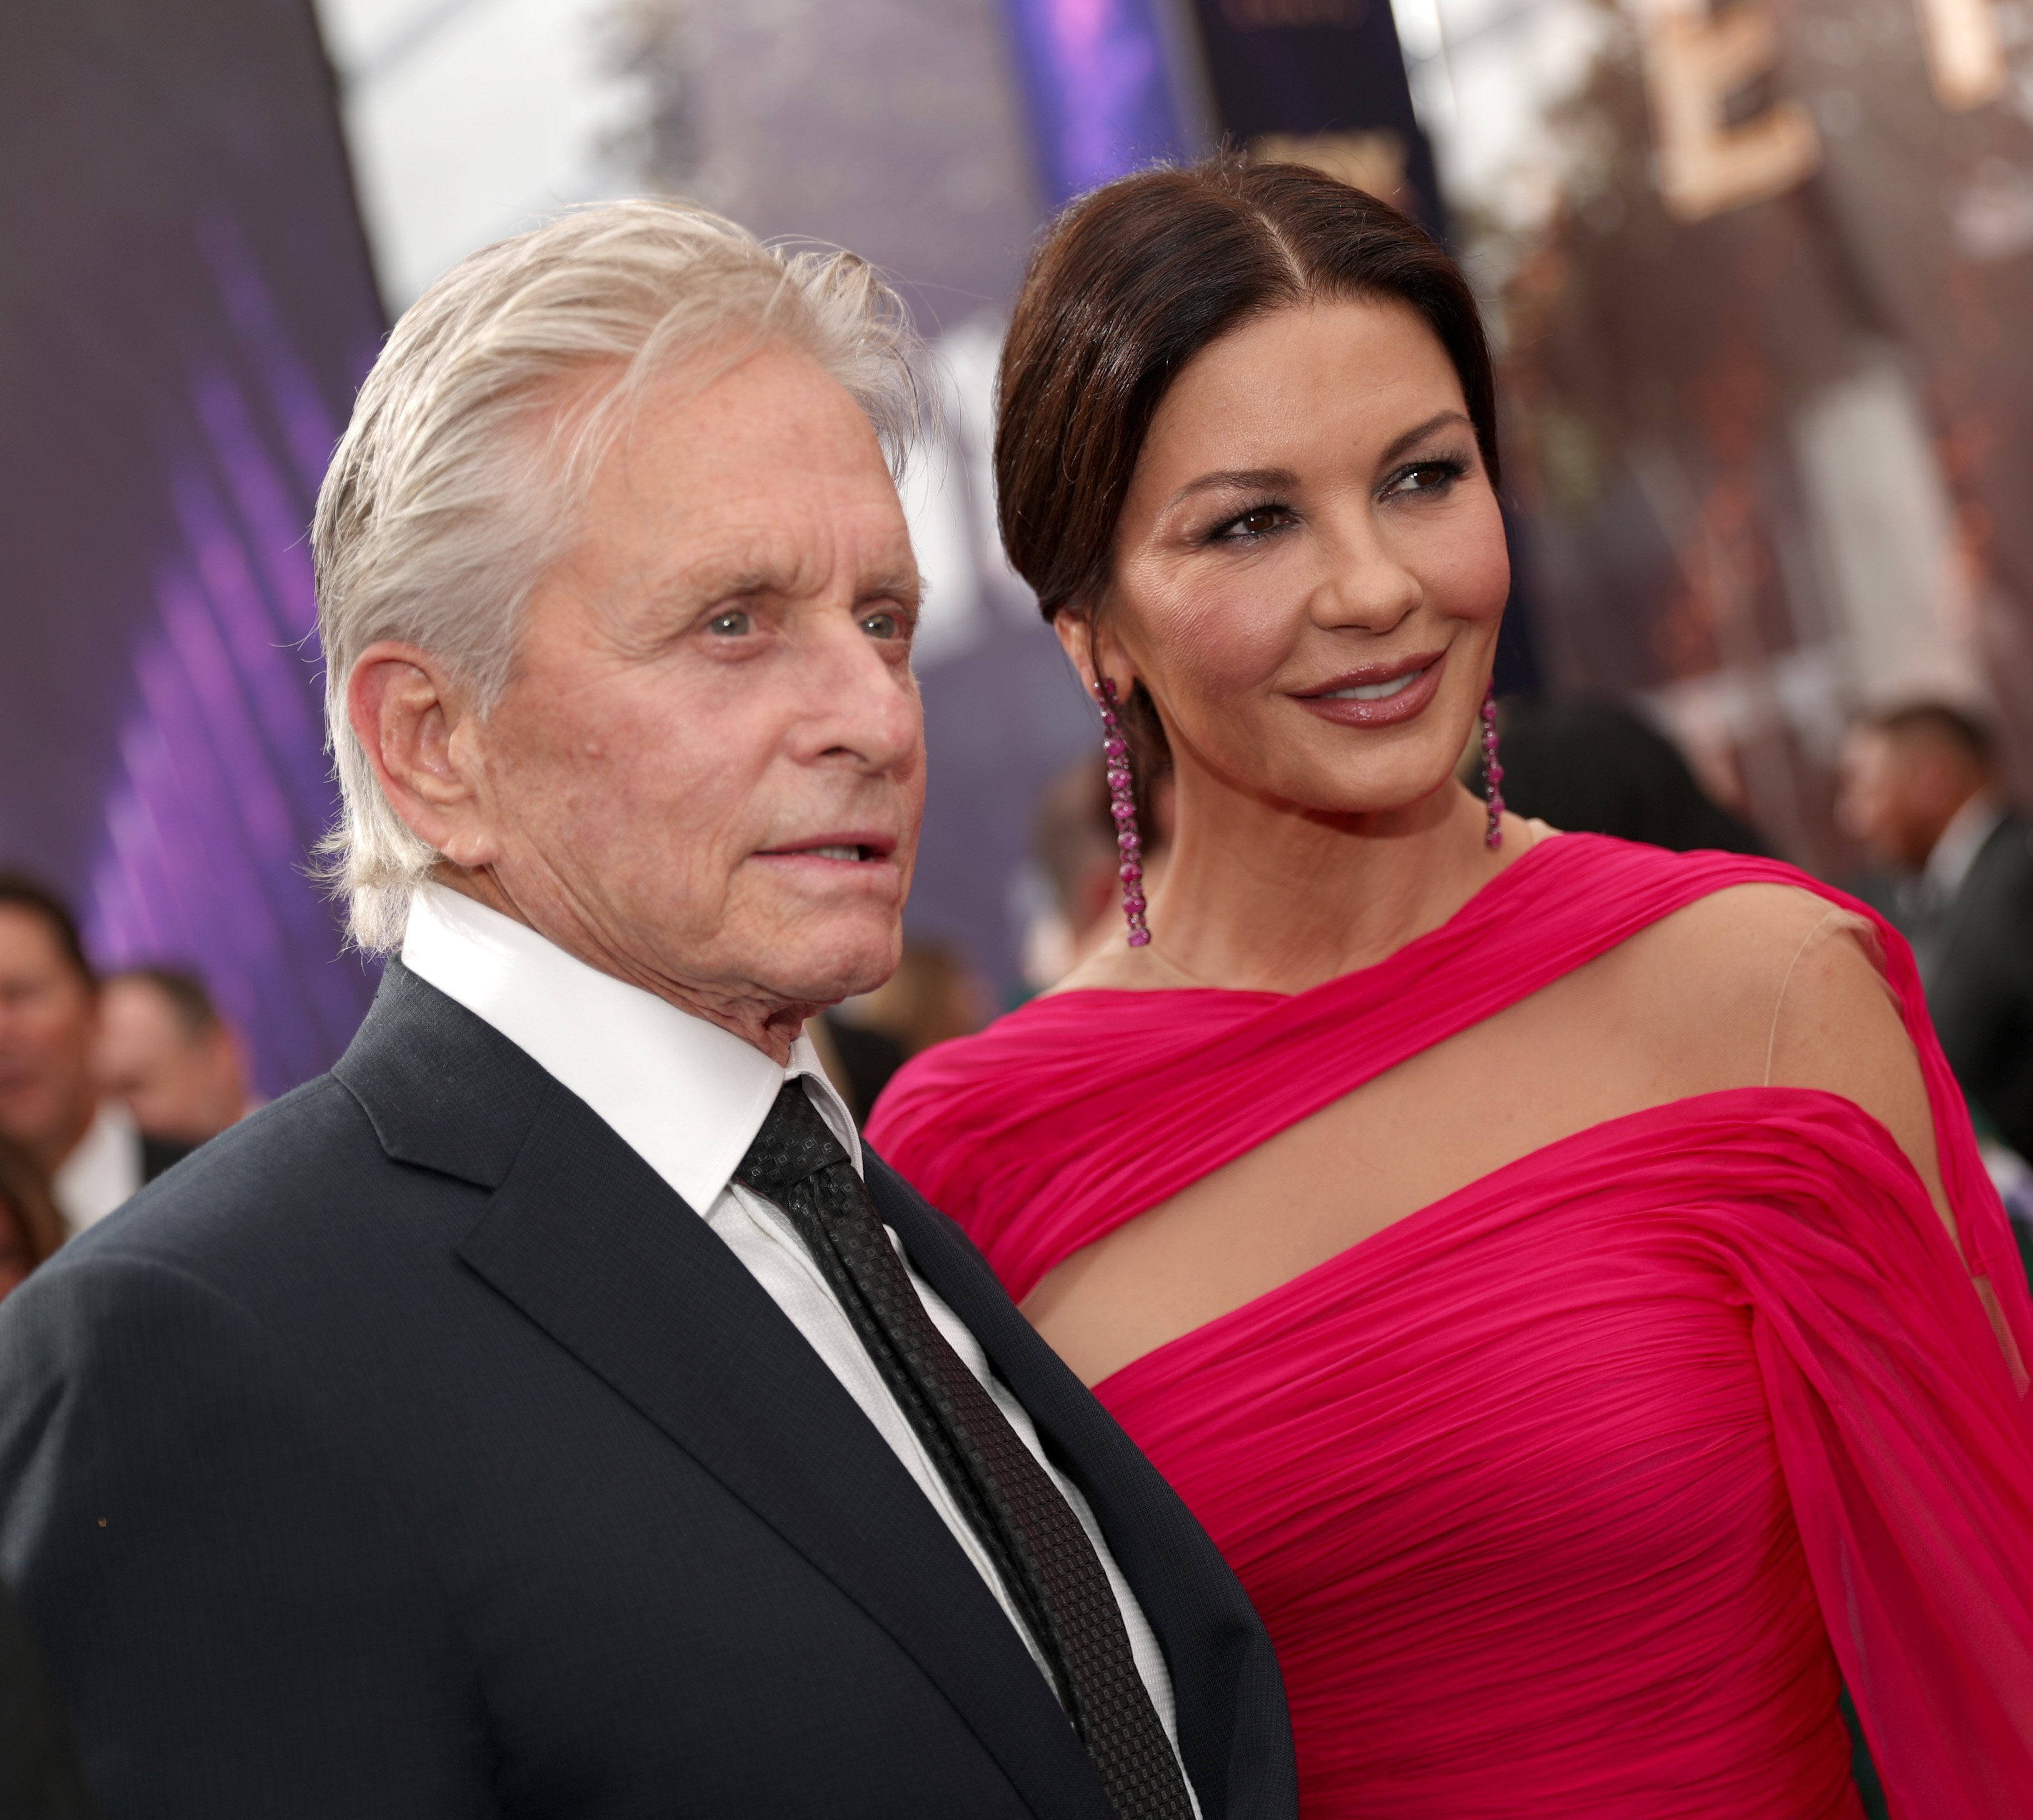 Image Credits: Getty Images / Rich Polk | Michael Douglas and Catherine Zeta-Jones walk the red carpet during the 71st Annual Primetime Emmy Awards on September 22, 2019 in Los Angeles, California.